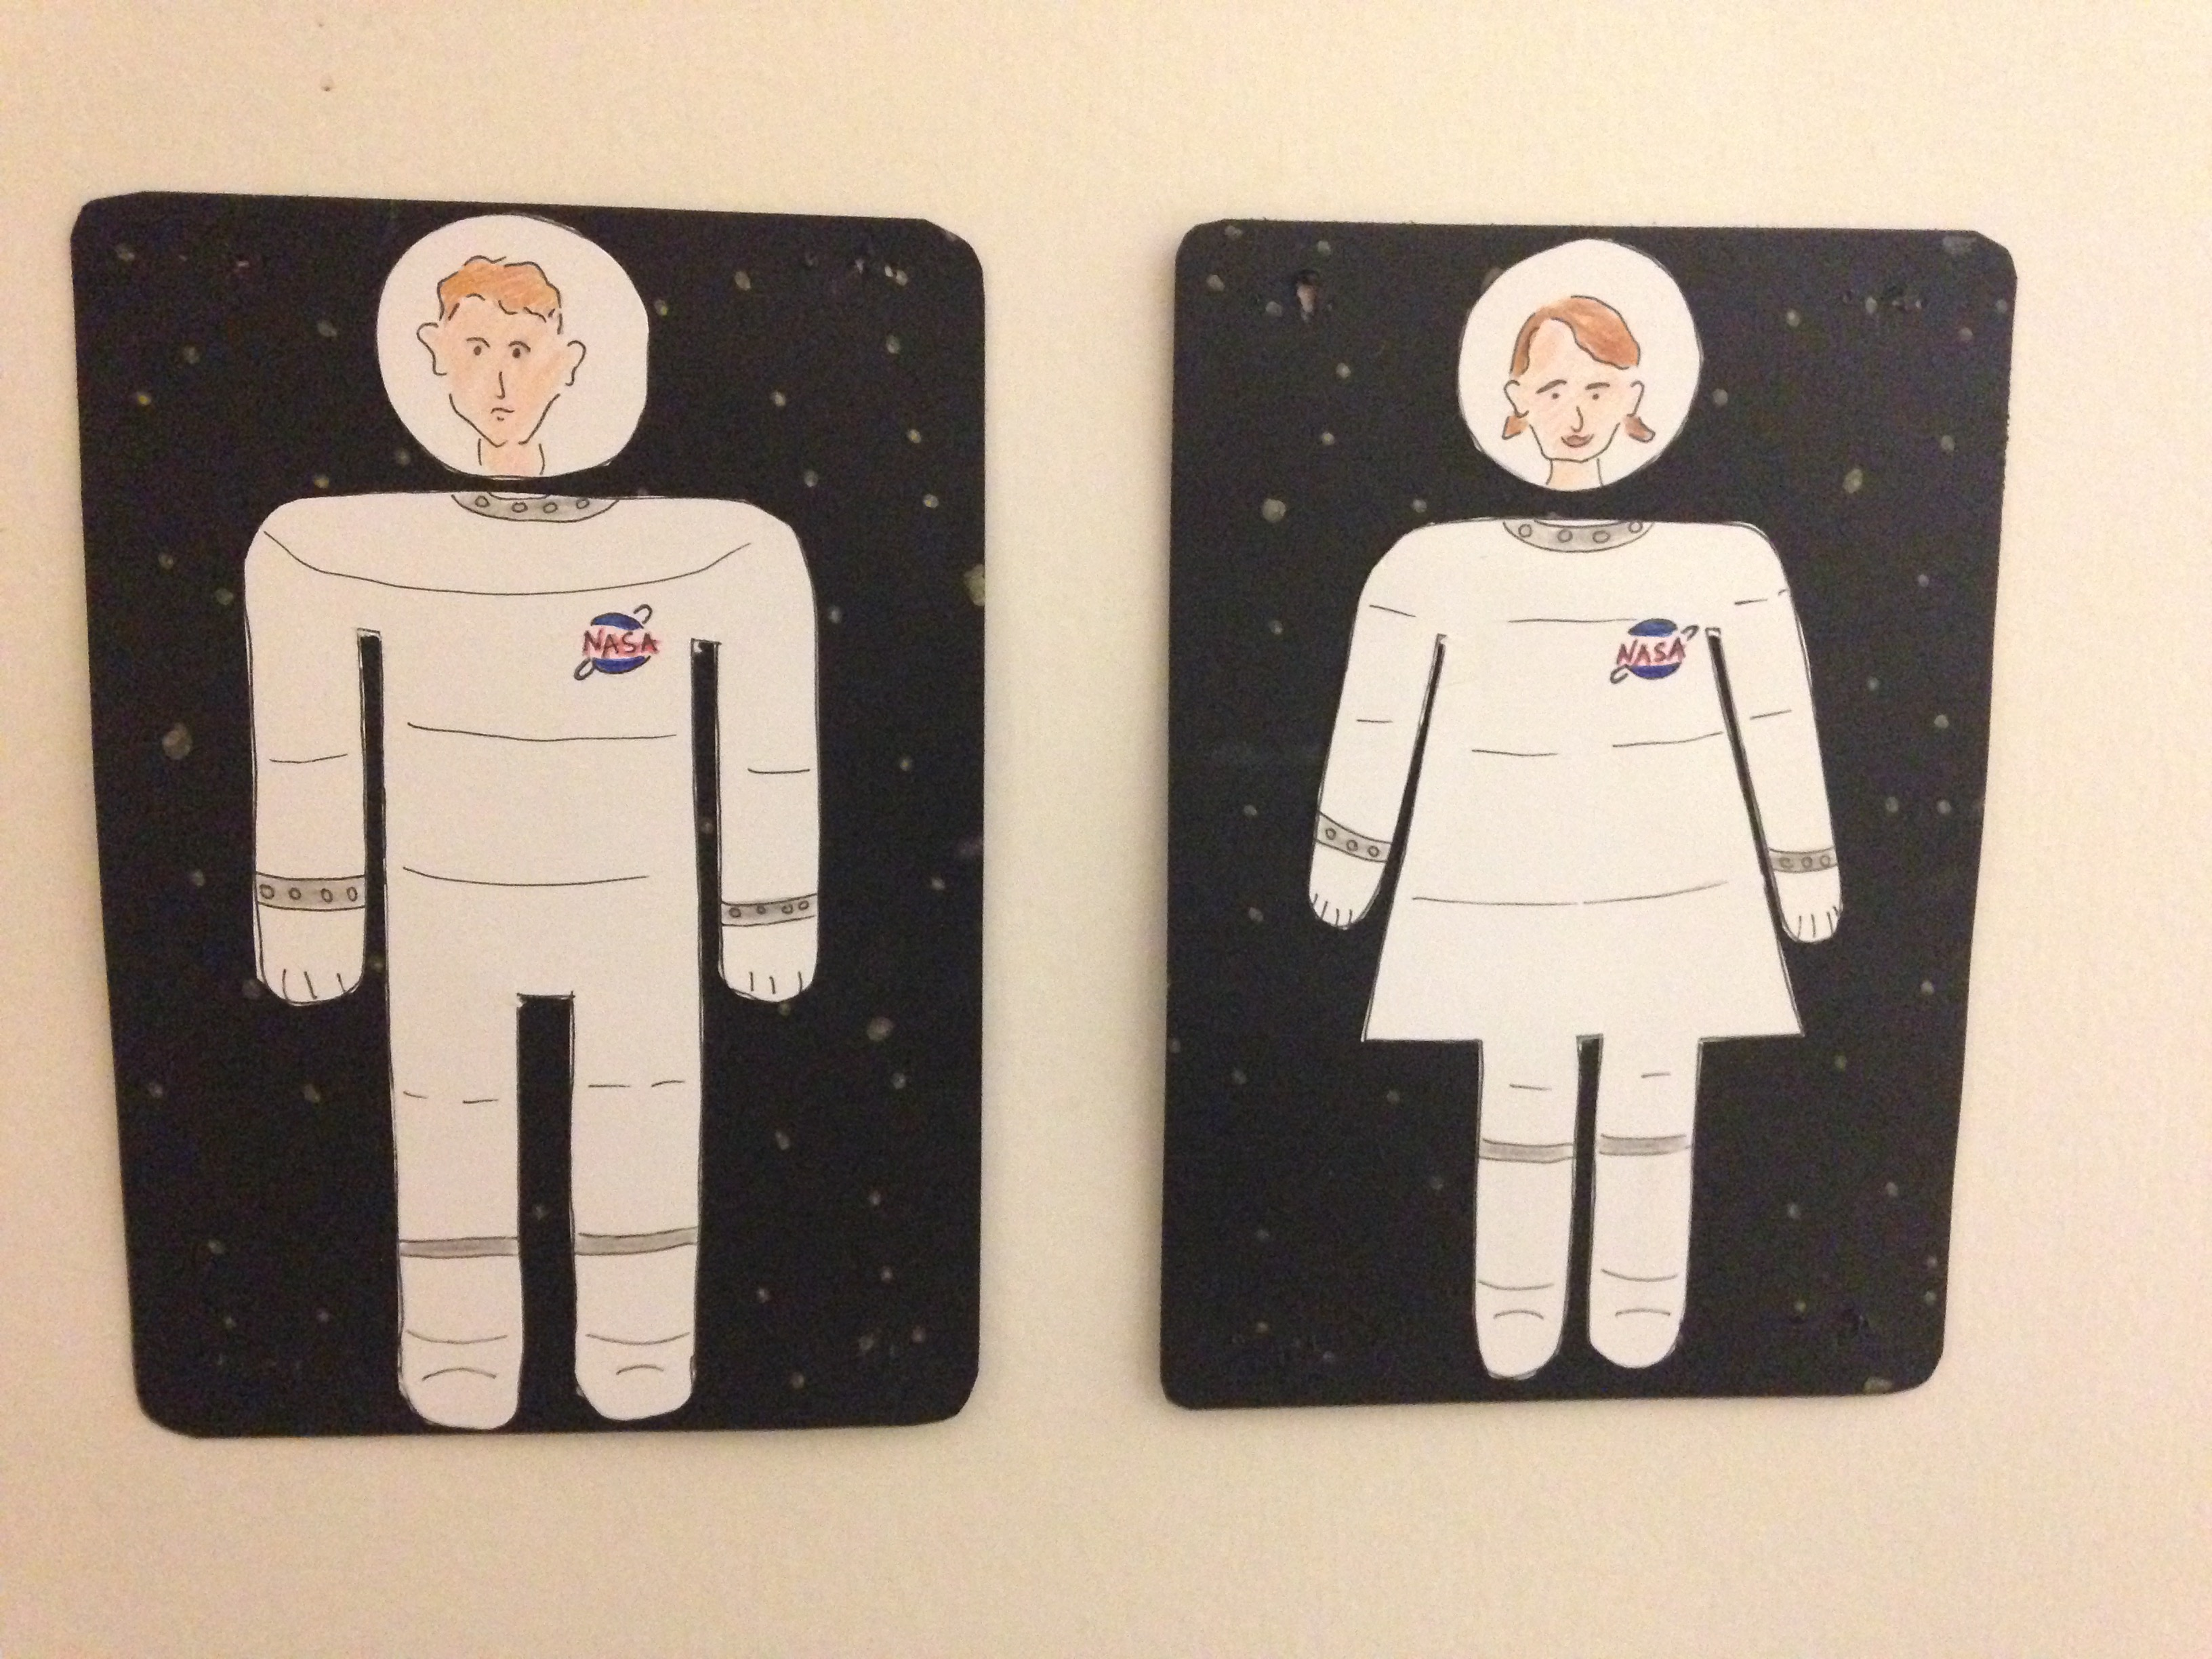 Who Wants Those Boring Bathroom Sign Symbols When You Can Have Astronaut  Themed His/her Bathroom Sign Symbols. Handmade On Paper And Card Stock.